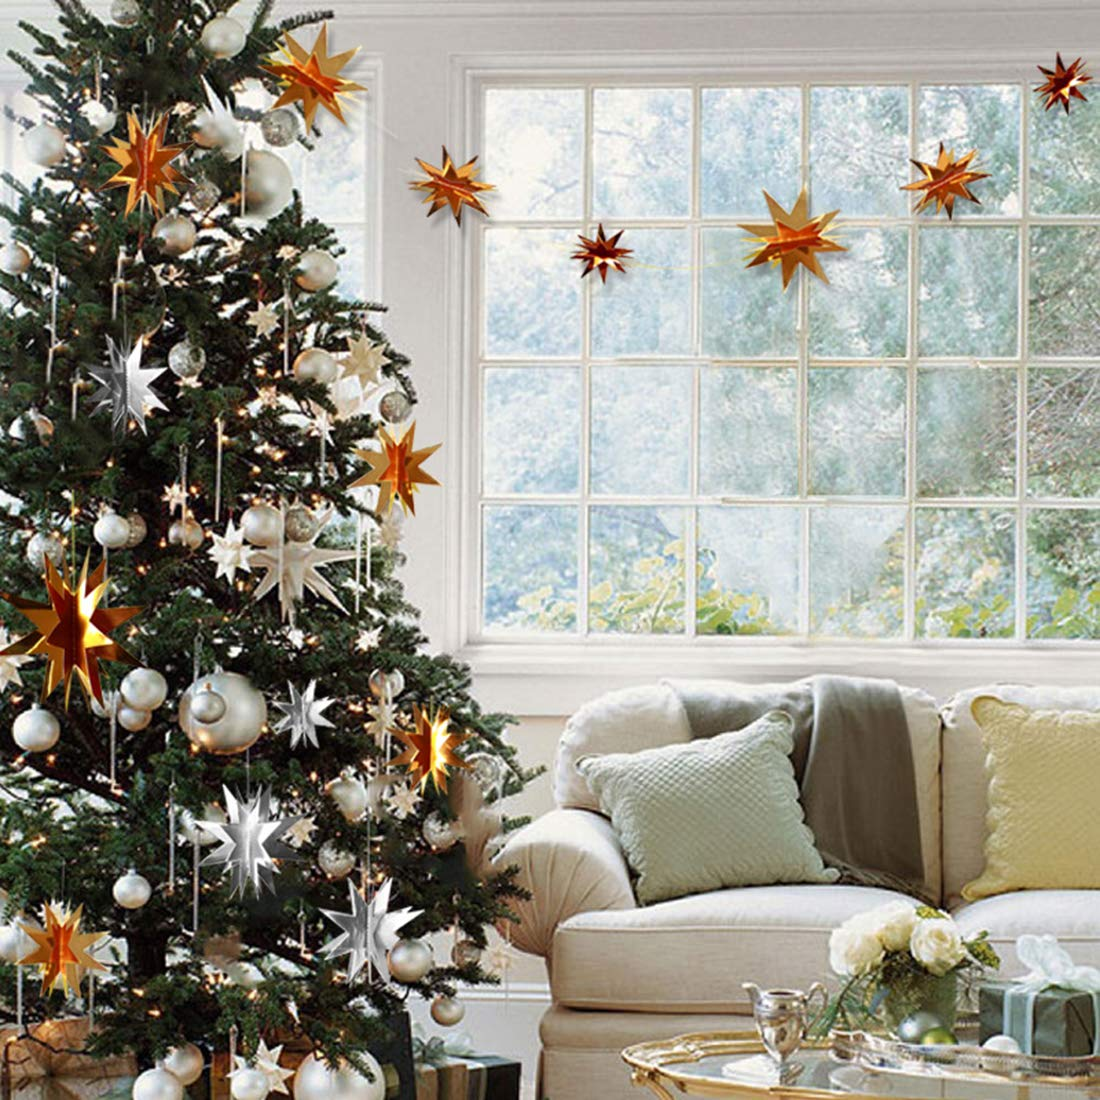 Christmas Tree Decorations 4 PCS 2M Hanging Garland with 6 Stars Gold and Silver Color for Home, Bedrooms, Dining Rooms, Hotel, Office, Show Window and Outdoor Garden Xmas Holiday Party Supplies